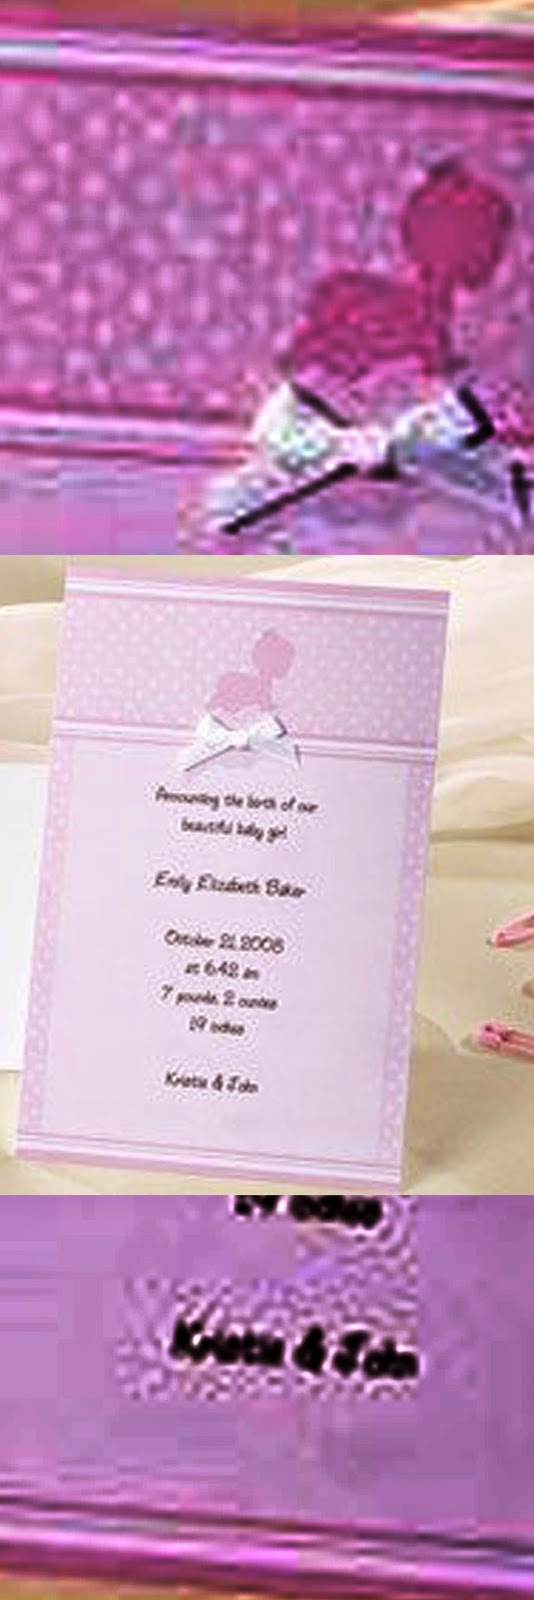 Baby announcement cards